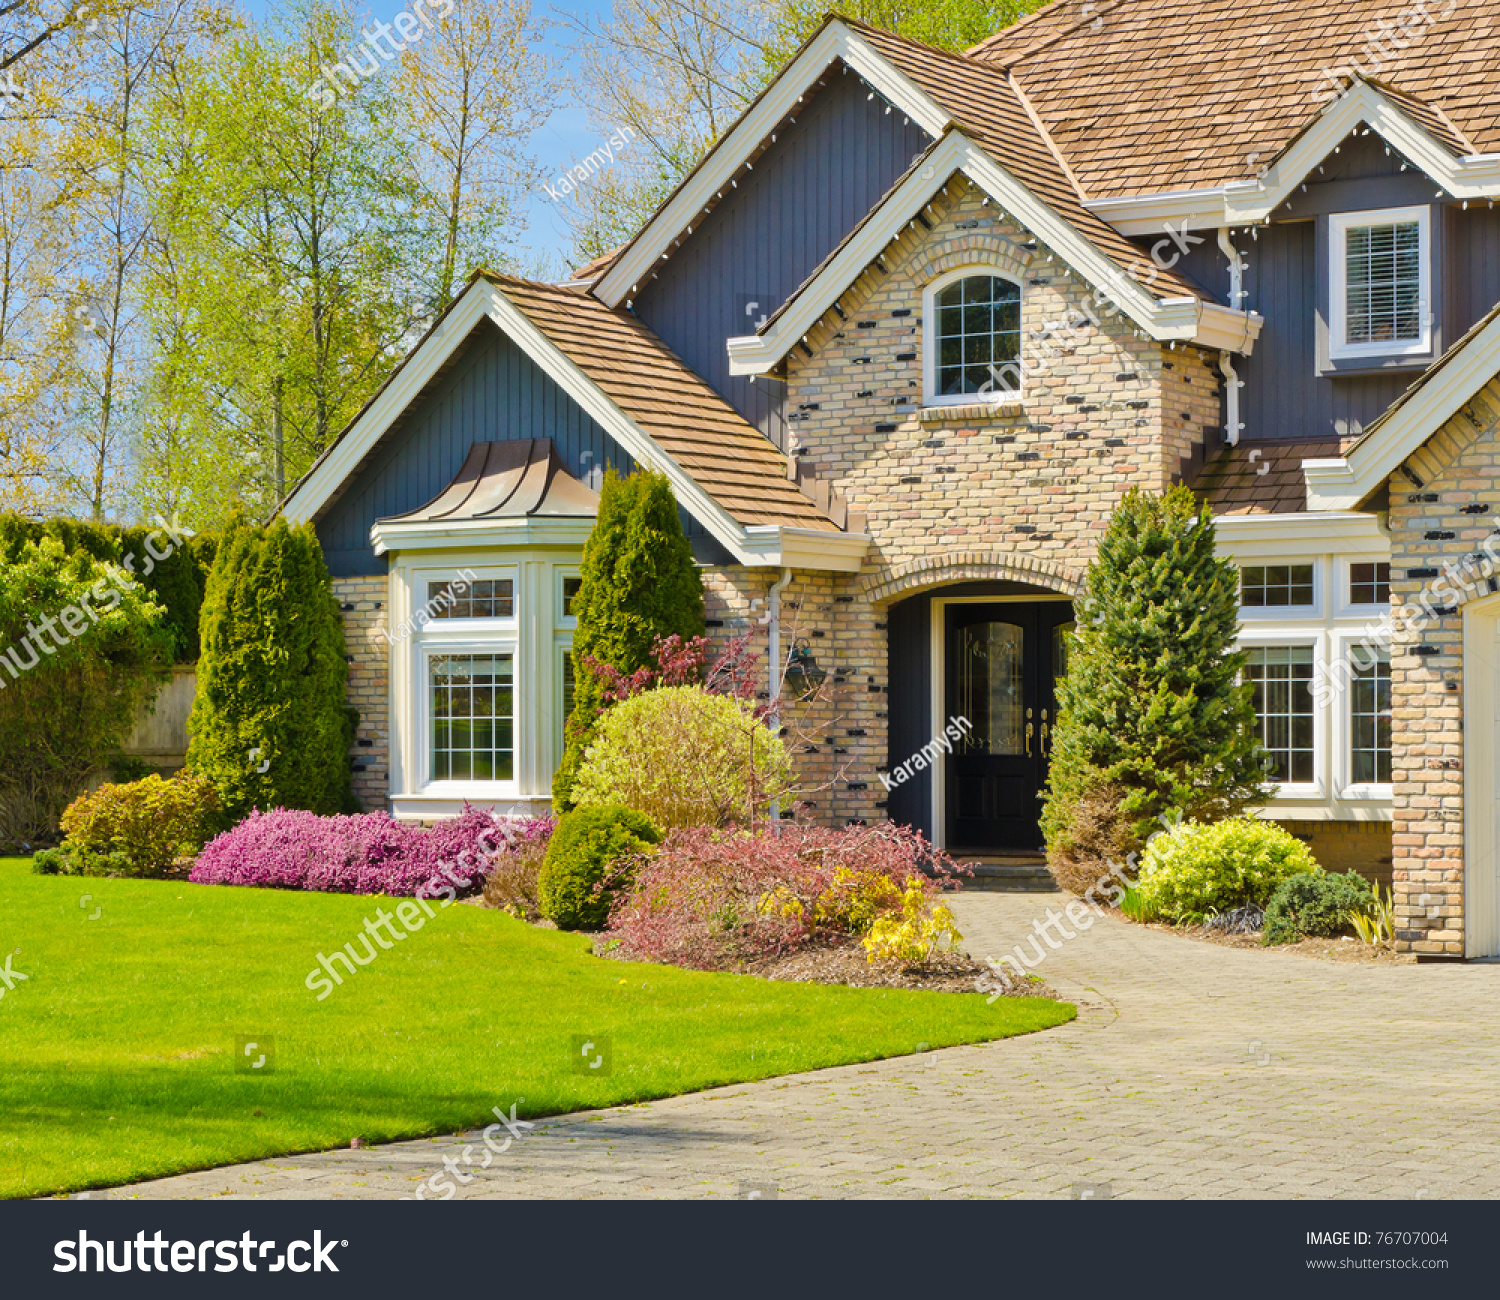 Fragment nice house vancouver canada stock photo 76707004 for Nice home photos